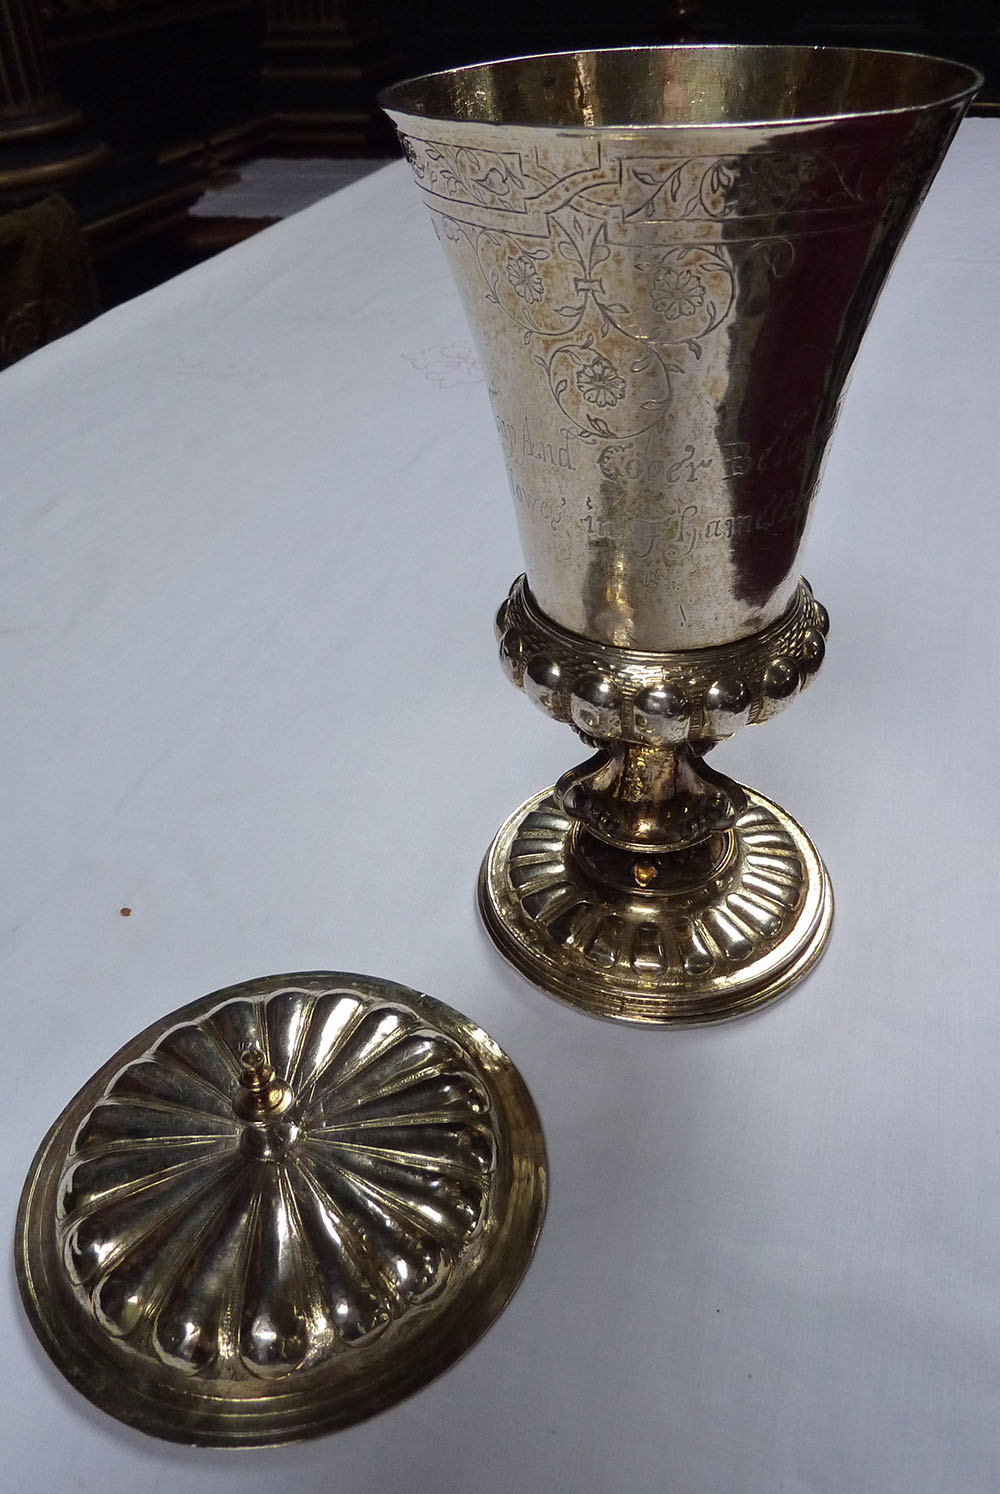 A 1575 brass coloured chalice with an ornate lid